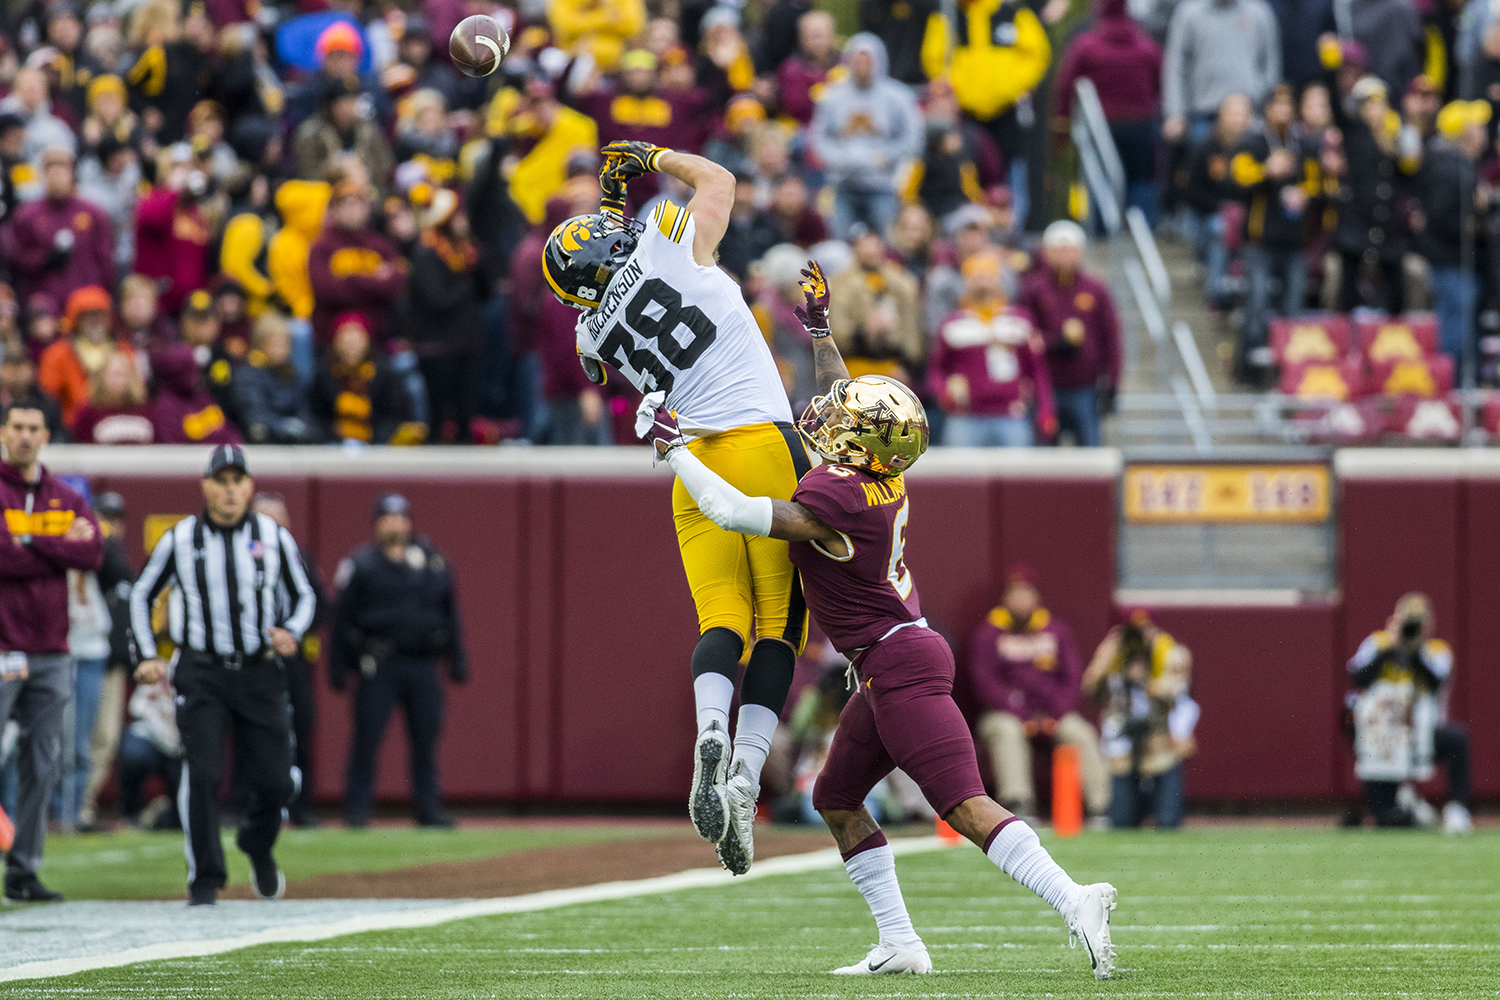 Iowa%27s+T.J.+Hockenson+misses+a+pass+during+the+Iowa%2FMinnesota+football+game+at+TCF+Bank+Stadium+in+Minneapolis+on+Saturday%2C+Oct.+6%2C+2018.+The+Hawkeyes+defeated+the+Golden+Gophers%2C+48-31.+